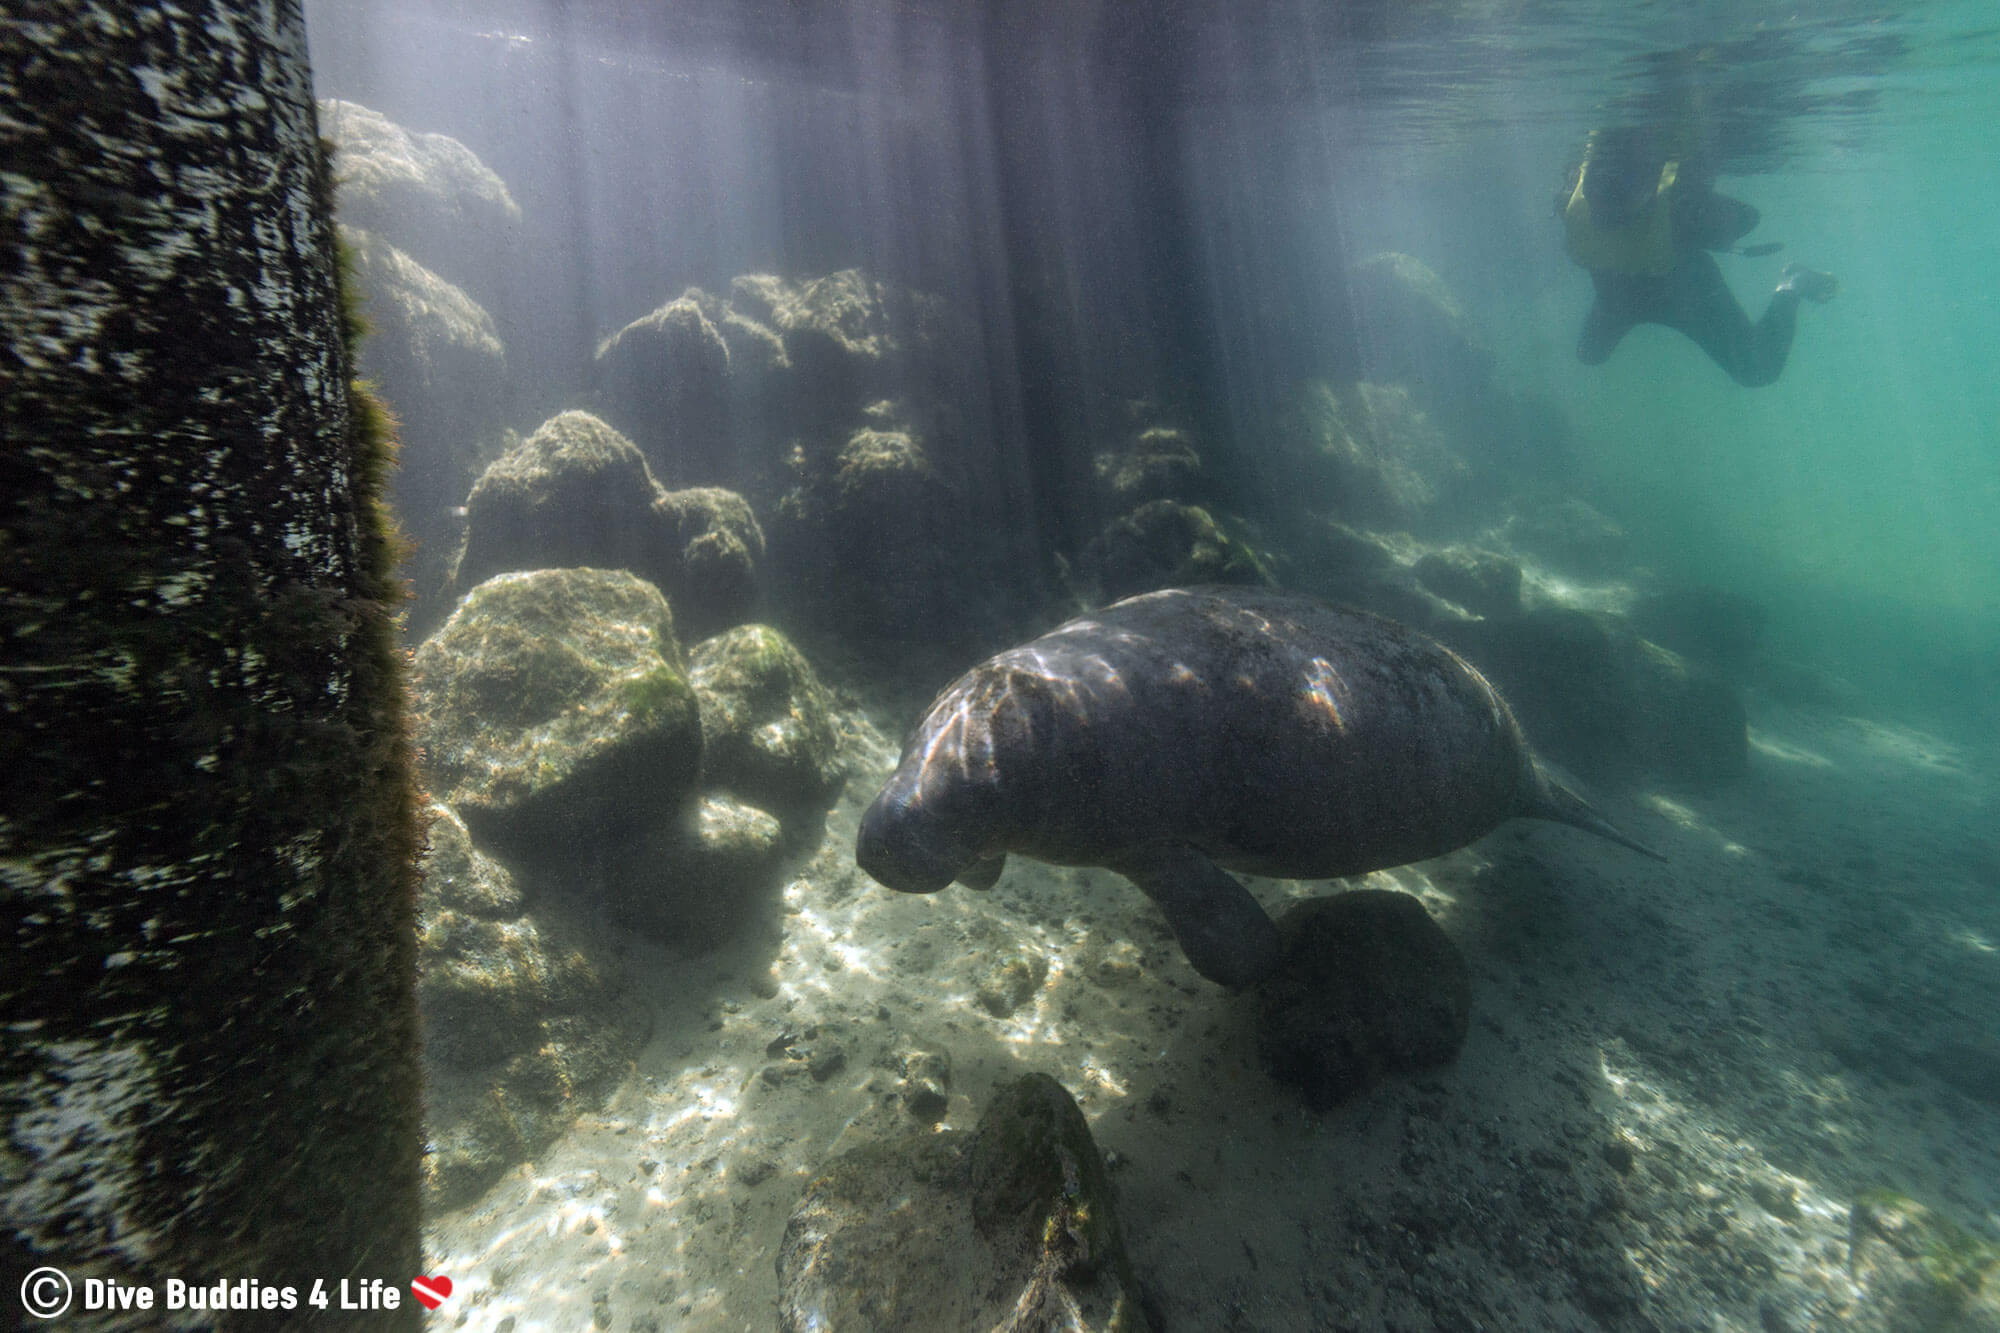 Ali Snorkeling In Three Sisters Spring With A Manatee Swimming, Florida, USA